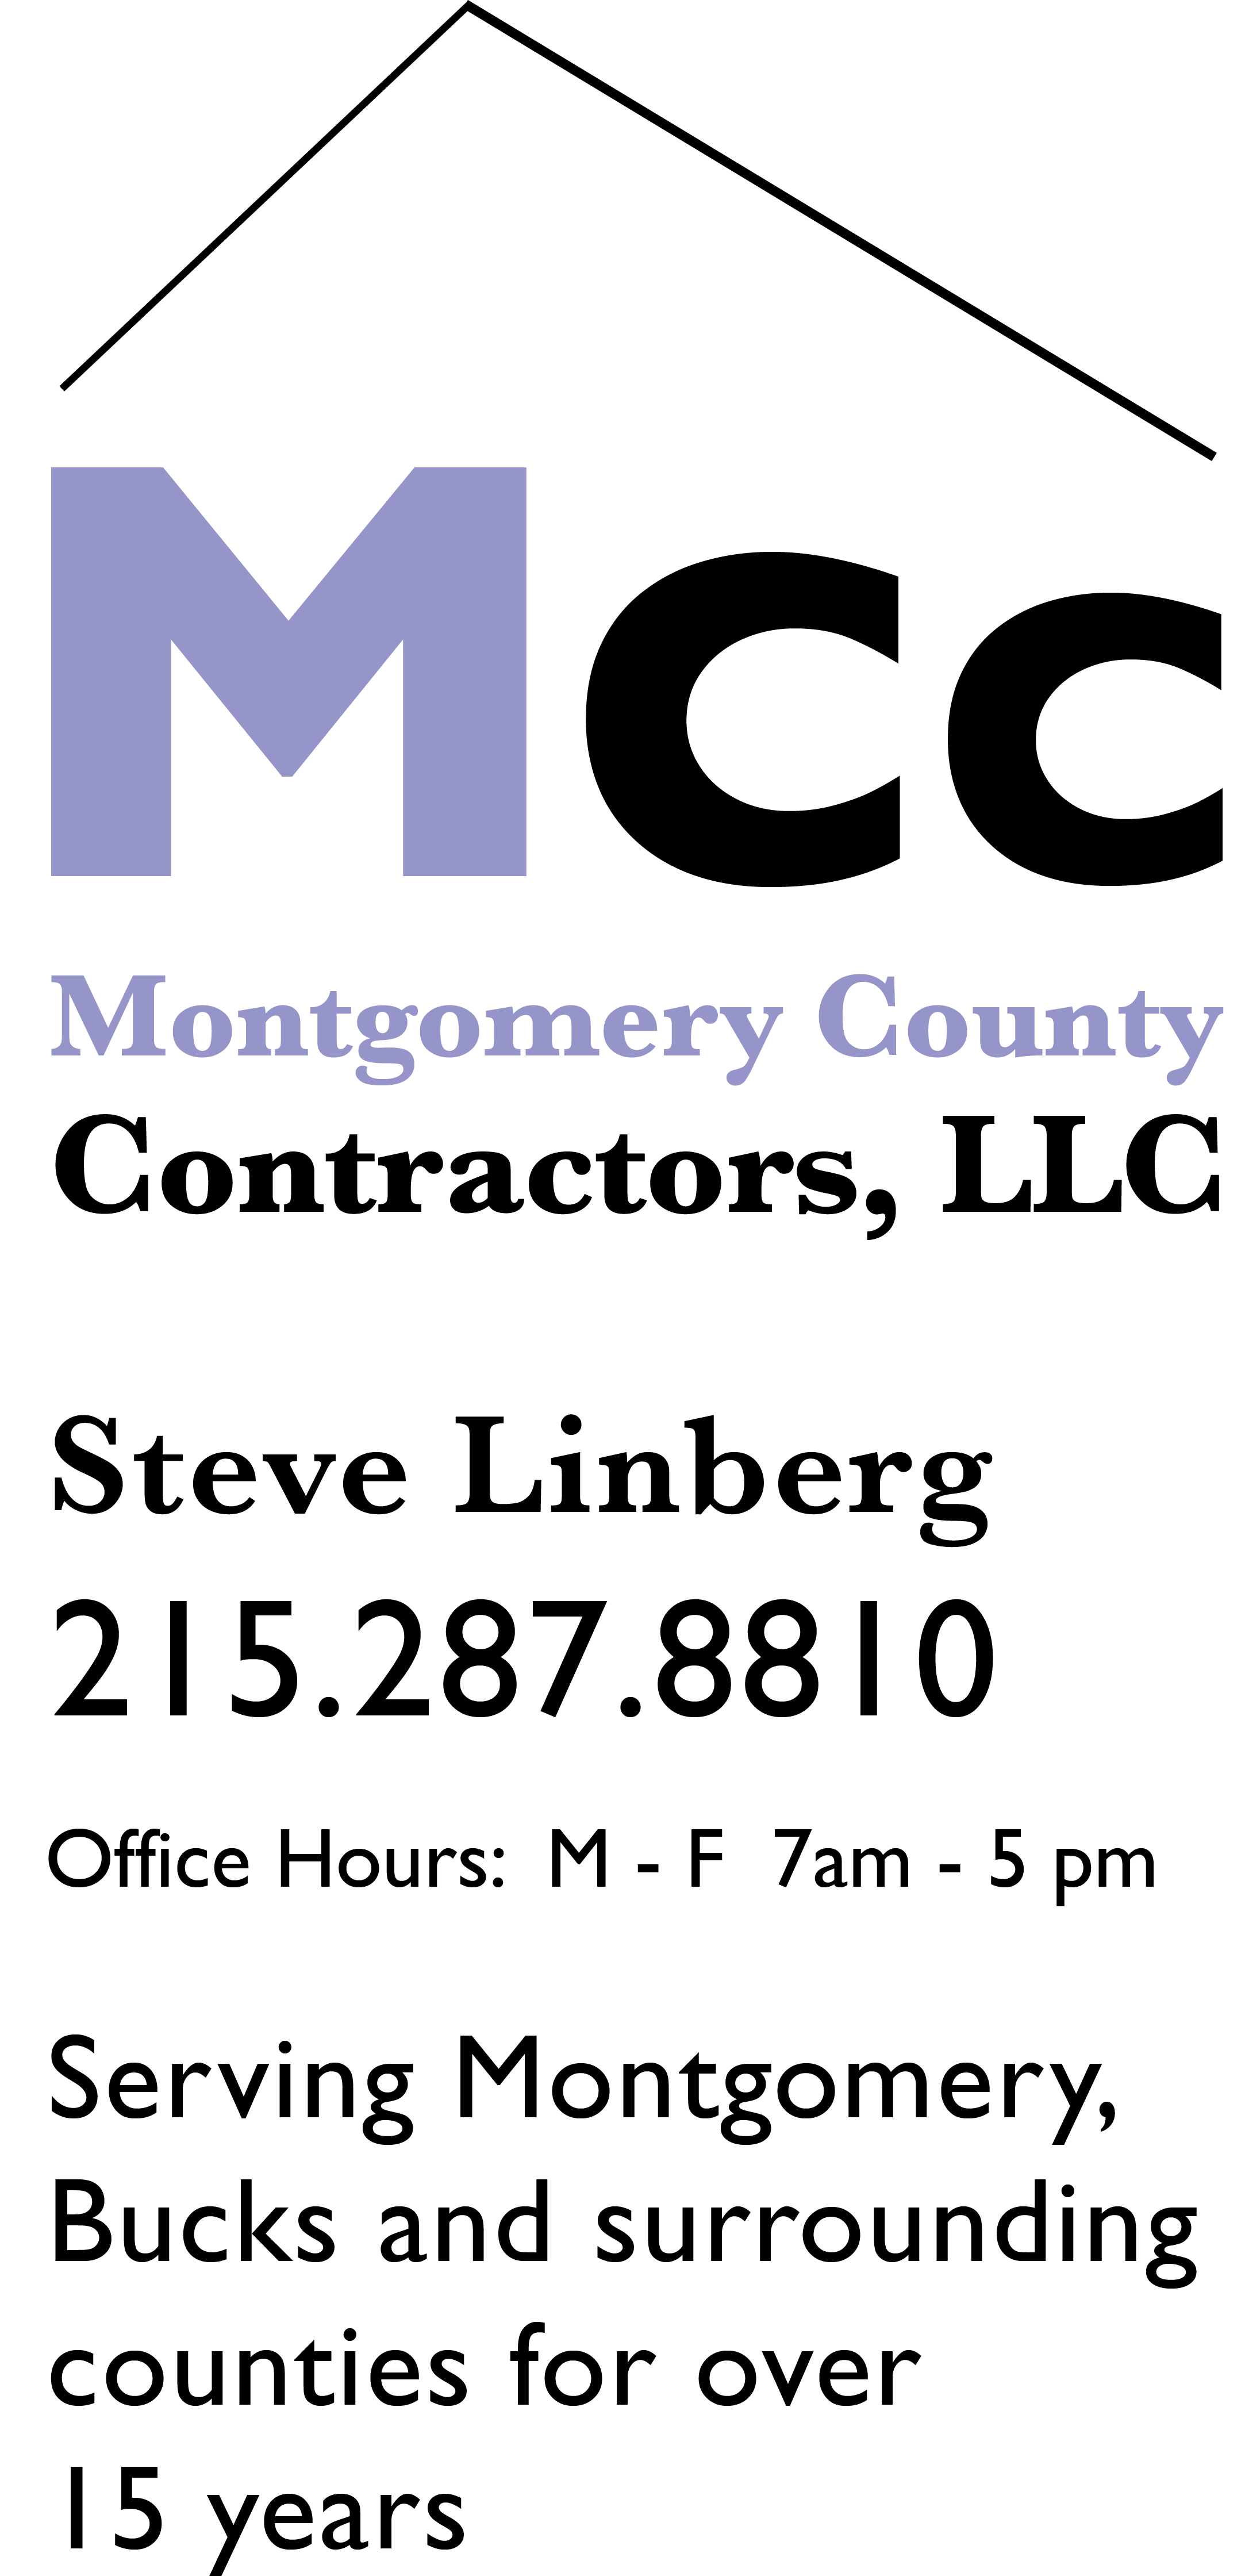 Montgomery County Contractors, LLC